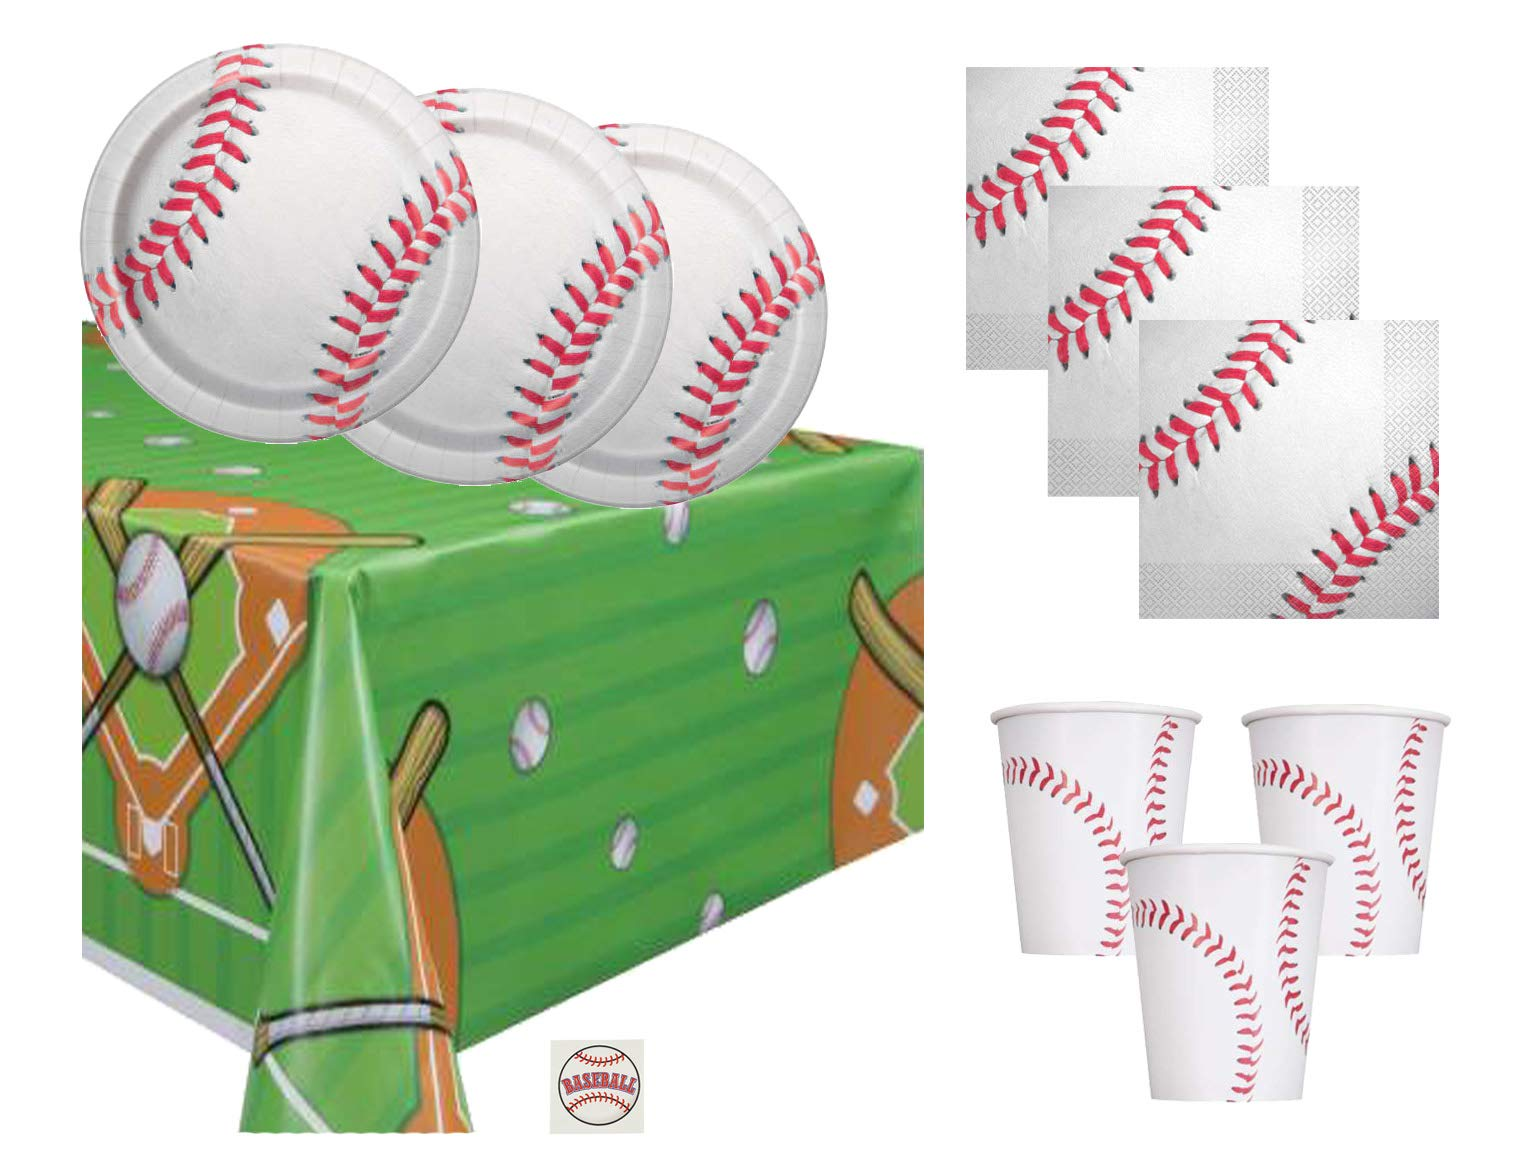 Baseball Theme Party Supplies Set - Plates, Cups, Napkins, Tablecloth Decoration (Serves 16) by Baseball (Image #1)